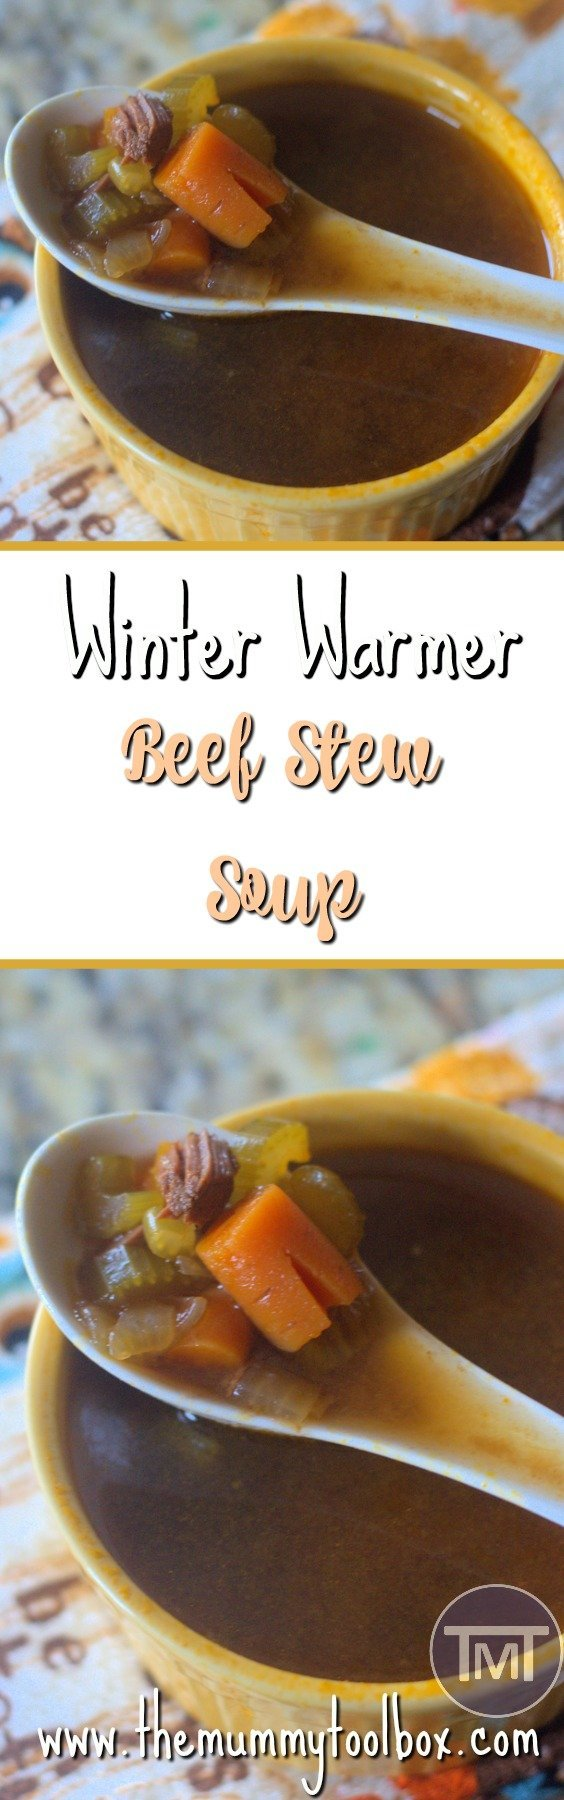 Winter is coming and as a cold person I need to warm myself up from the inside, this is where this delicious beef stew soup comes in, perfect for the cold!